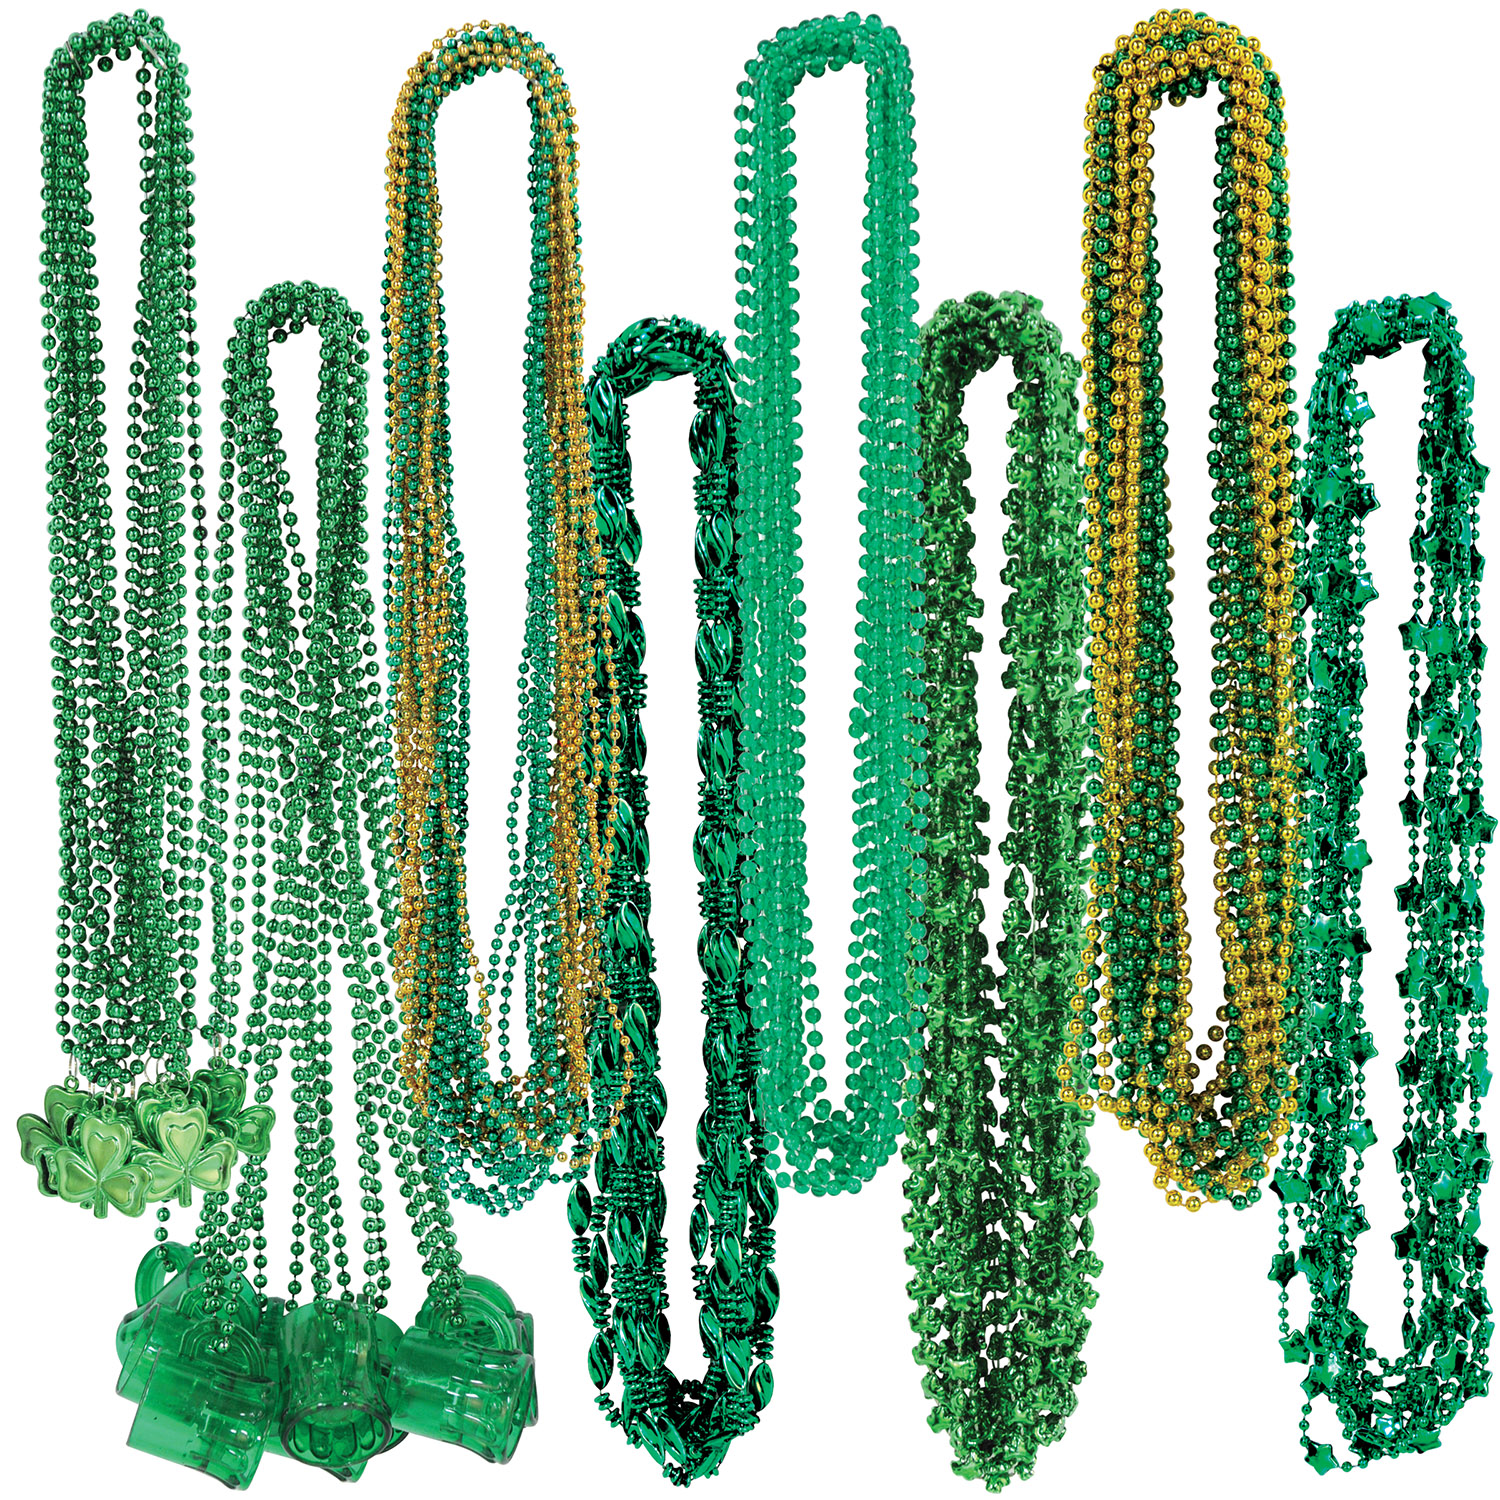 ST PATRICK'S BEAD ASSORTMENT (1) image